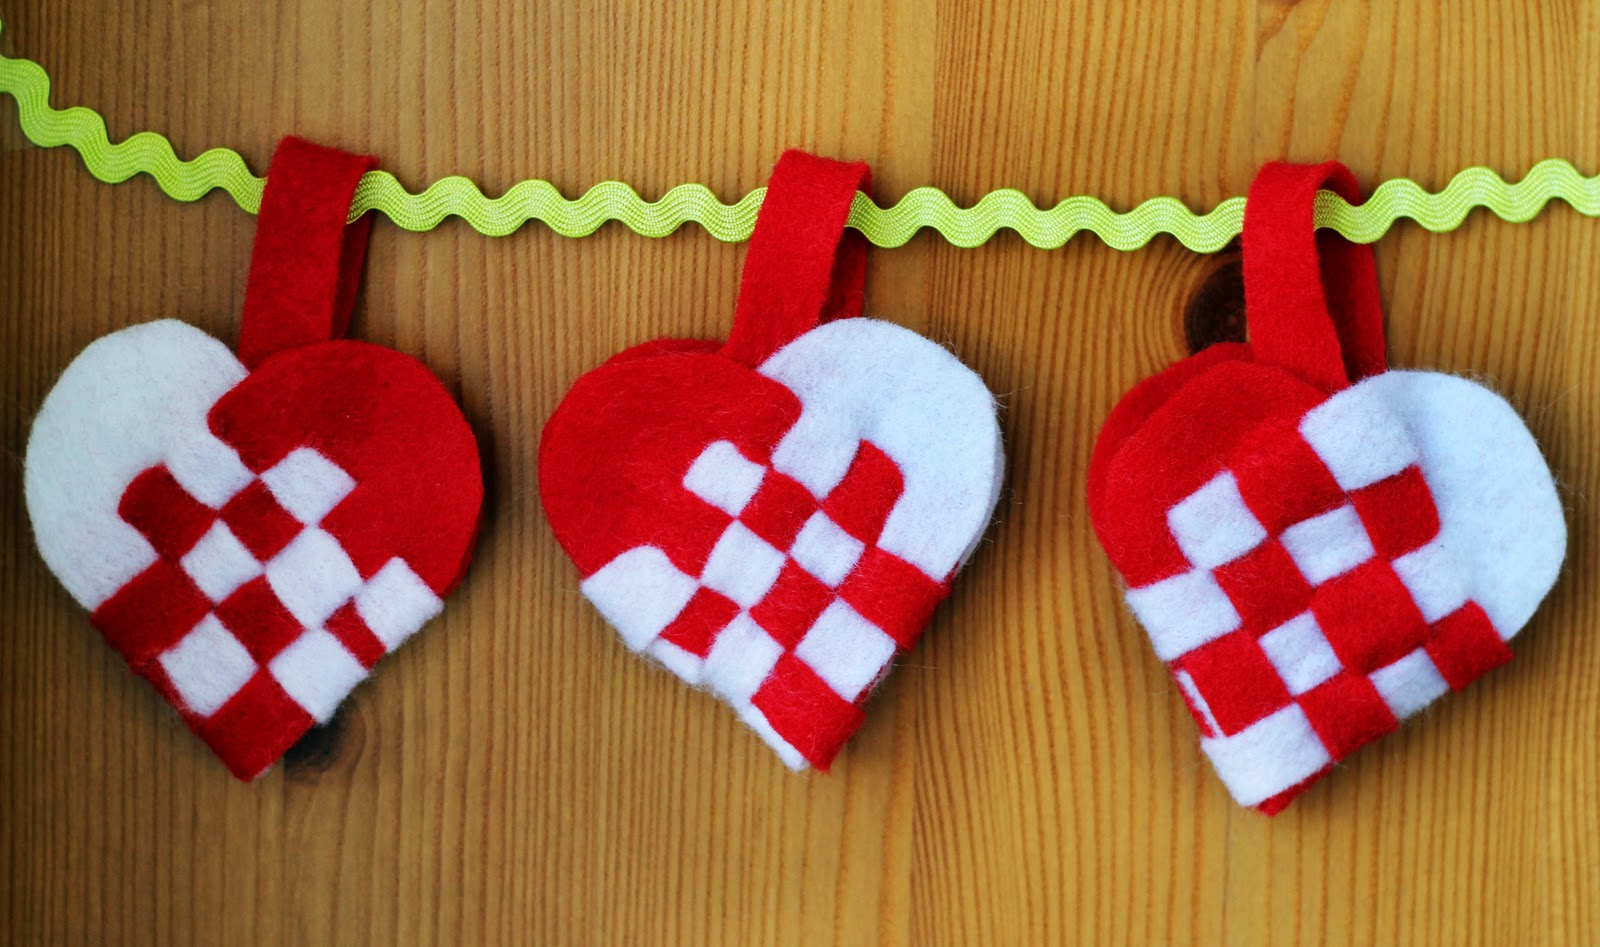 How To Make A Woven Heart Basket : Weaving danish heart baskets for jul radmegan